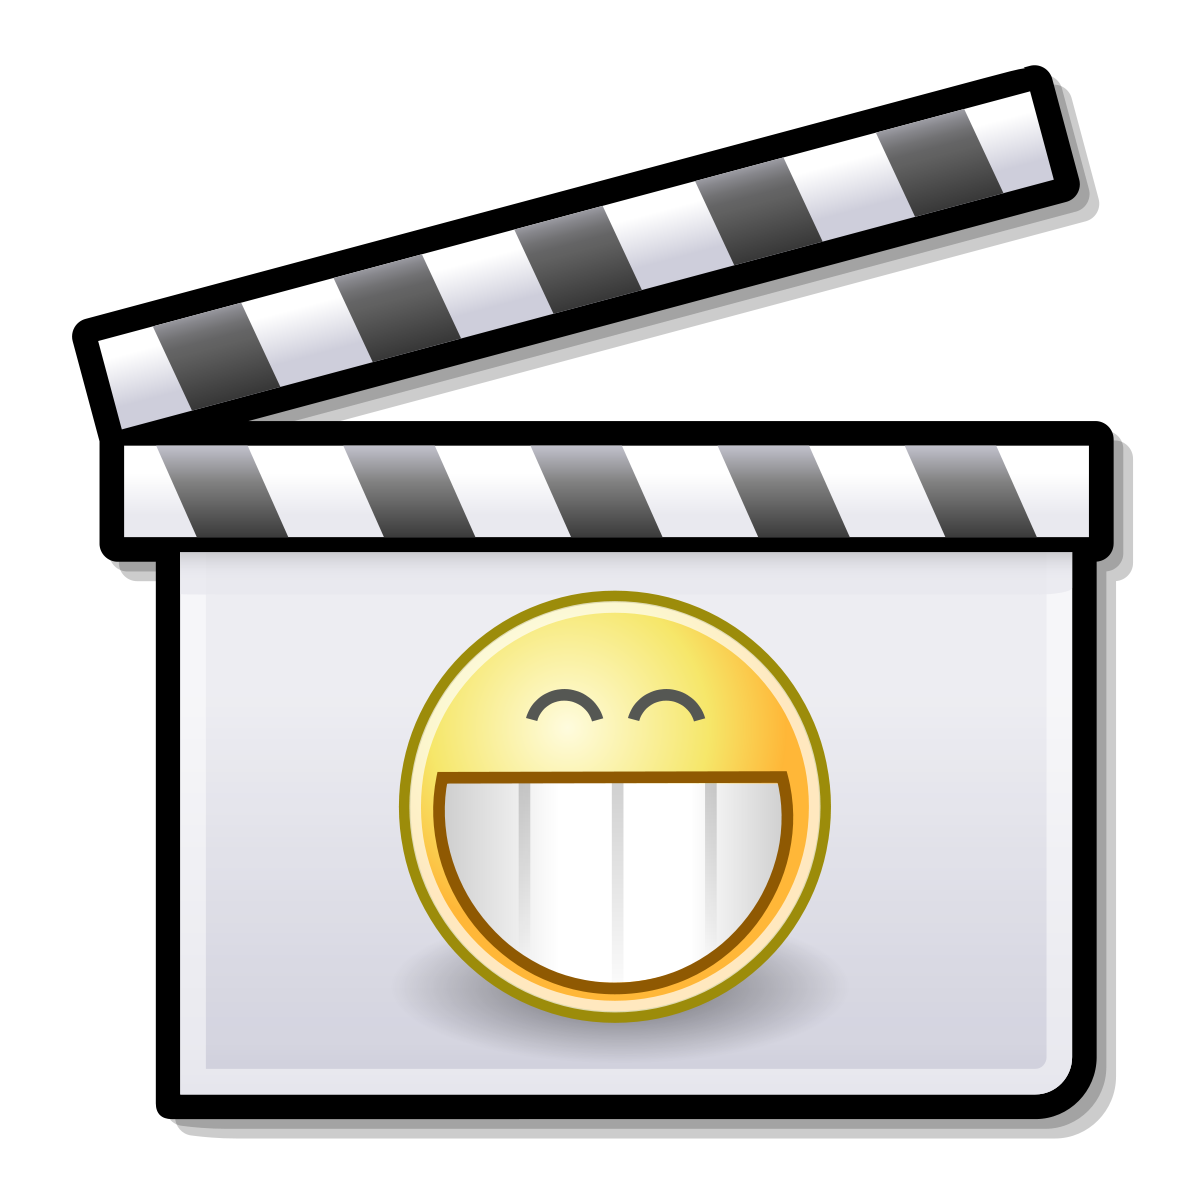 Detective comedy dinner theatre png. List of films the